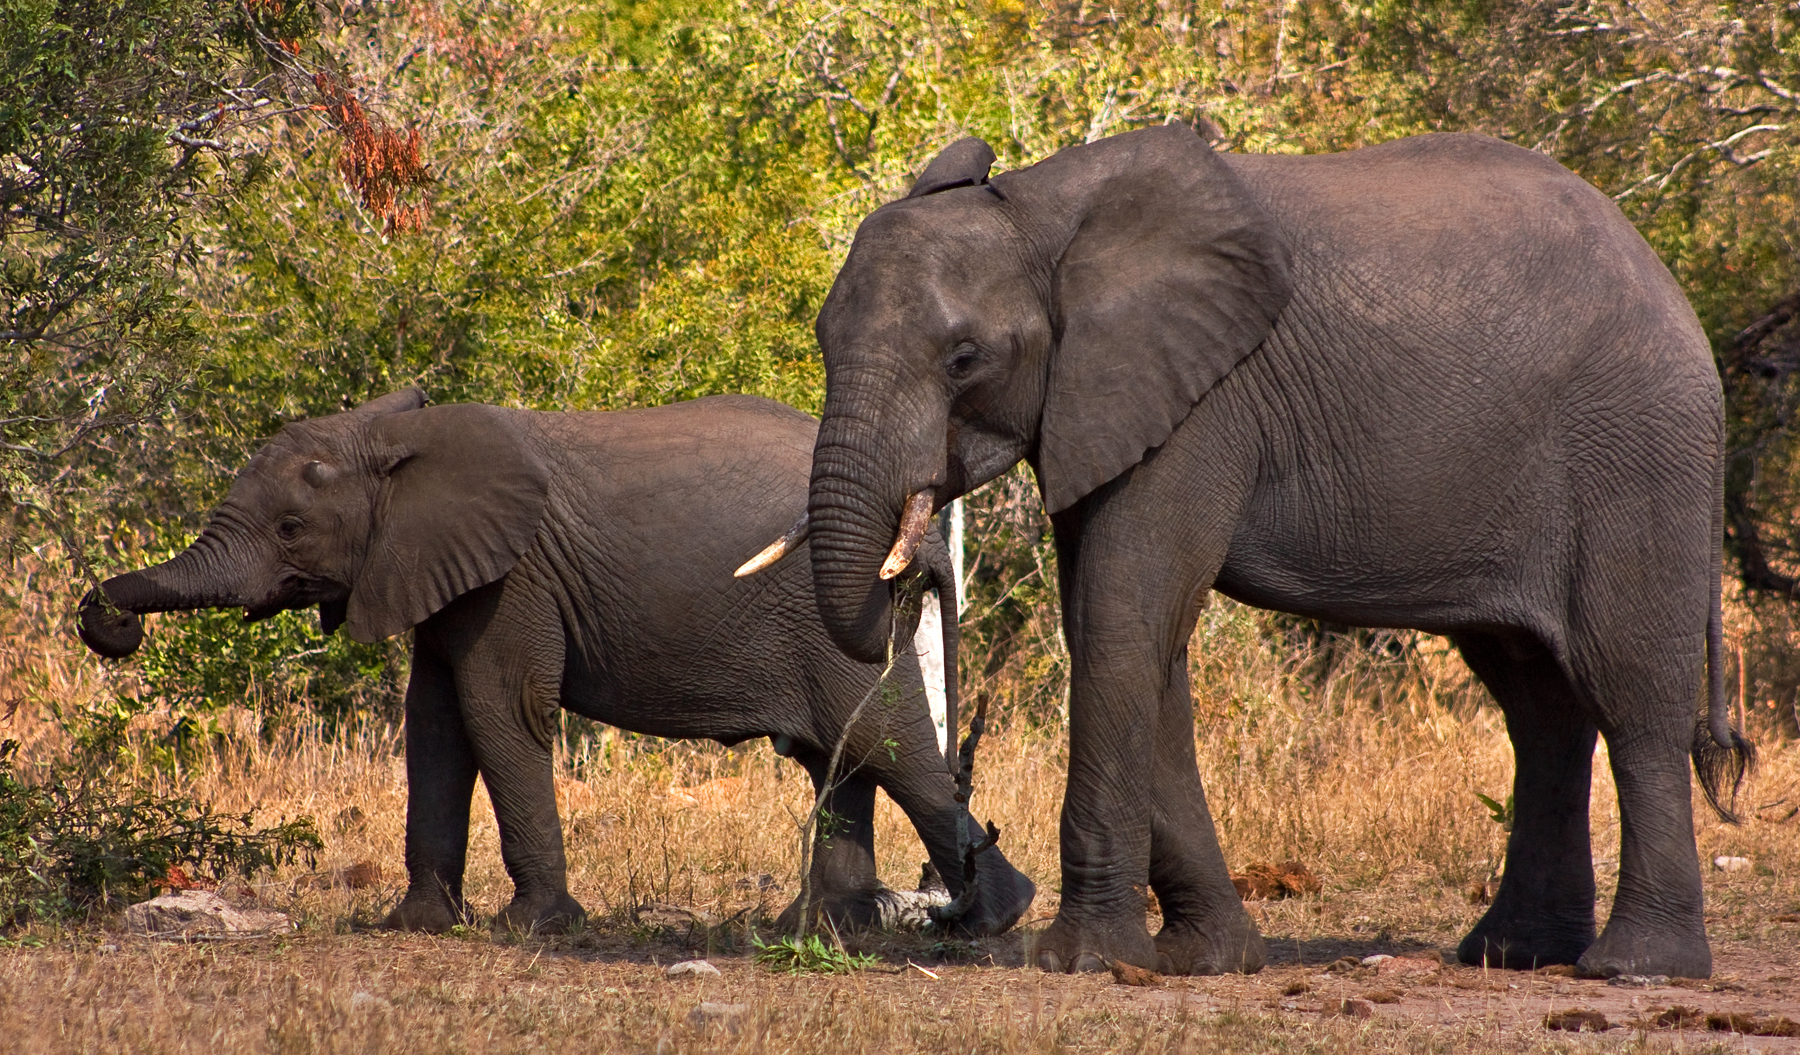 Kruger Park Elephants, Africa, Safari, Pachiderm, Pachyderm, HQ Photo